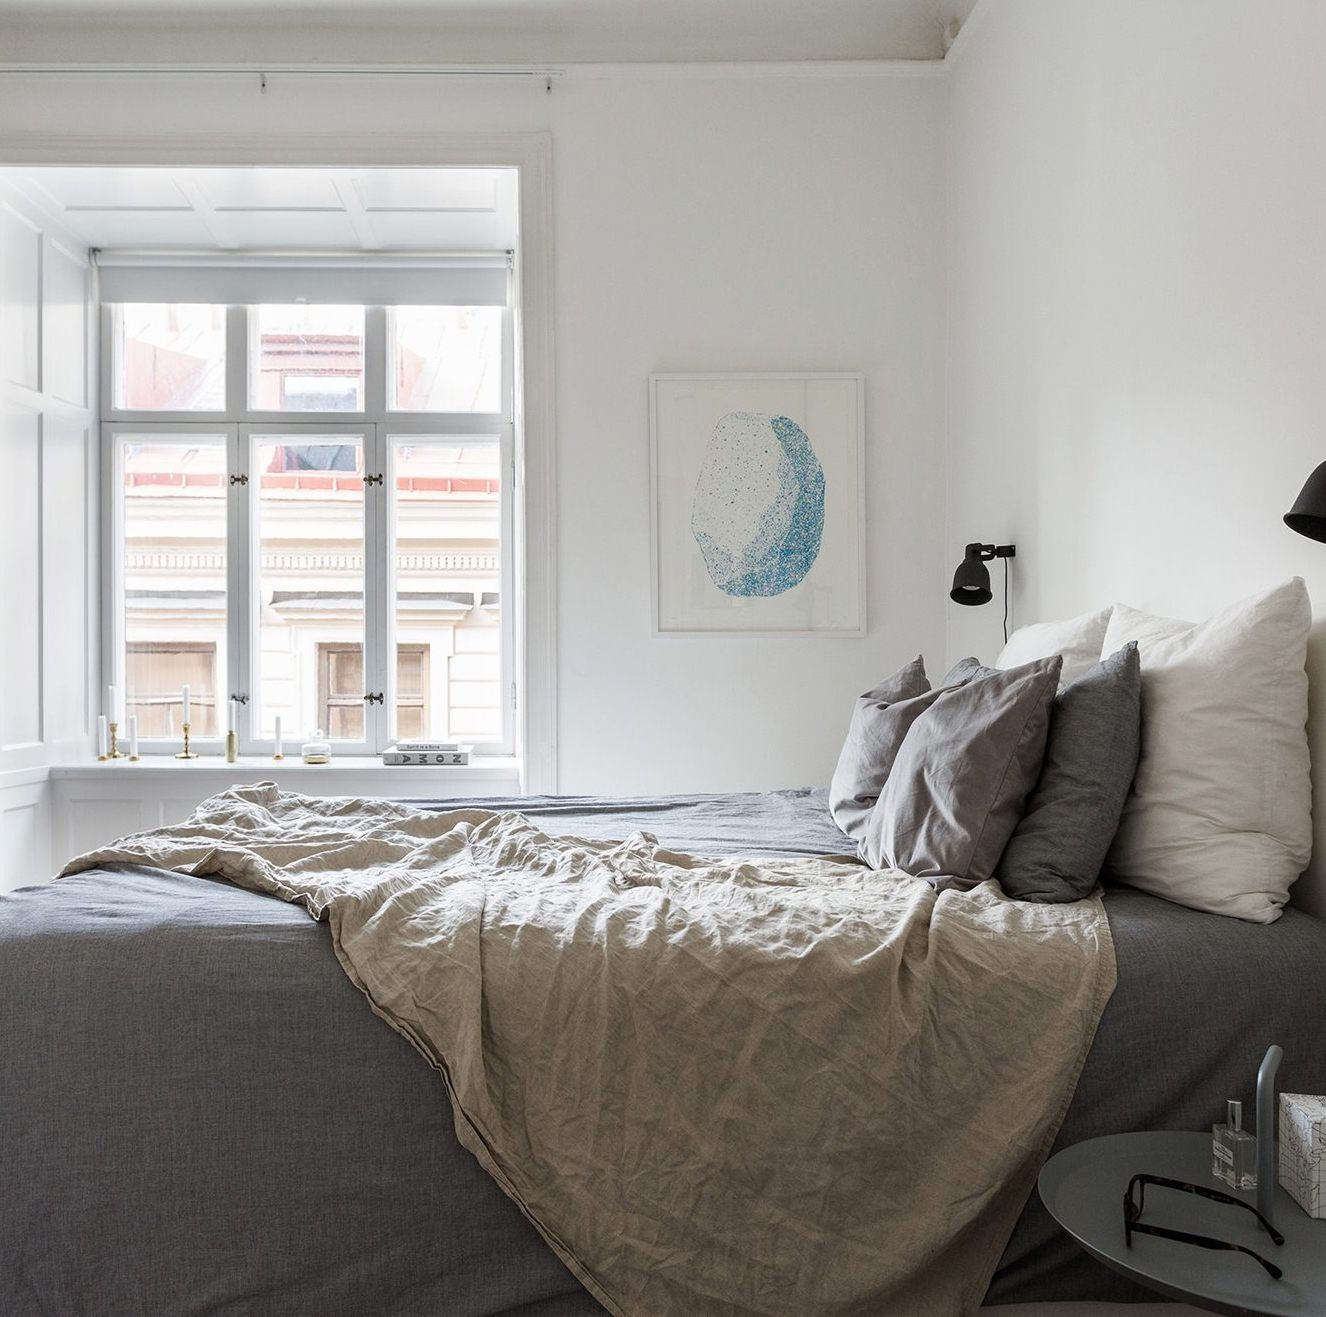 Simple Modern Apartment With Pastel Colors Looks So Cozy: Those Window Sills - Via Coco Lapine Design